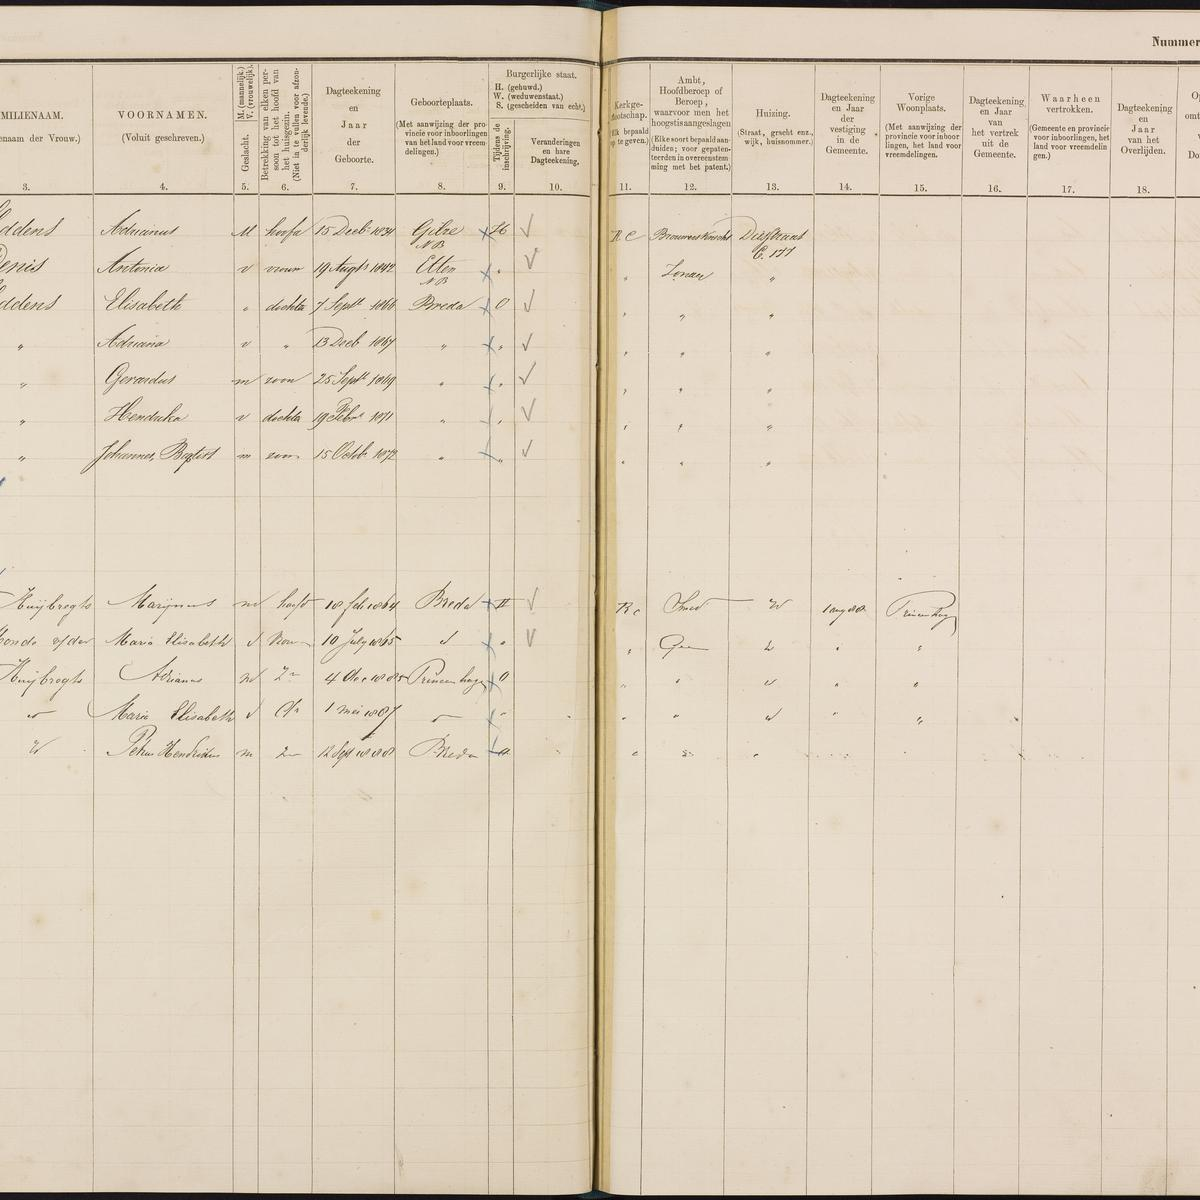 Population registry, Breda, 1880-1889, part 13, sheet 116